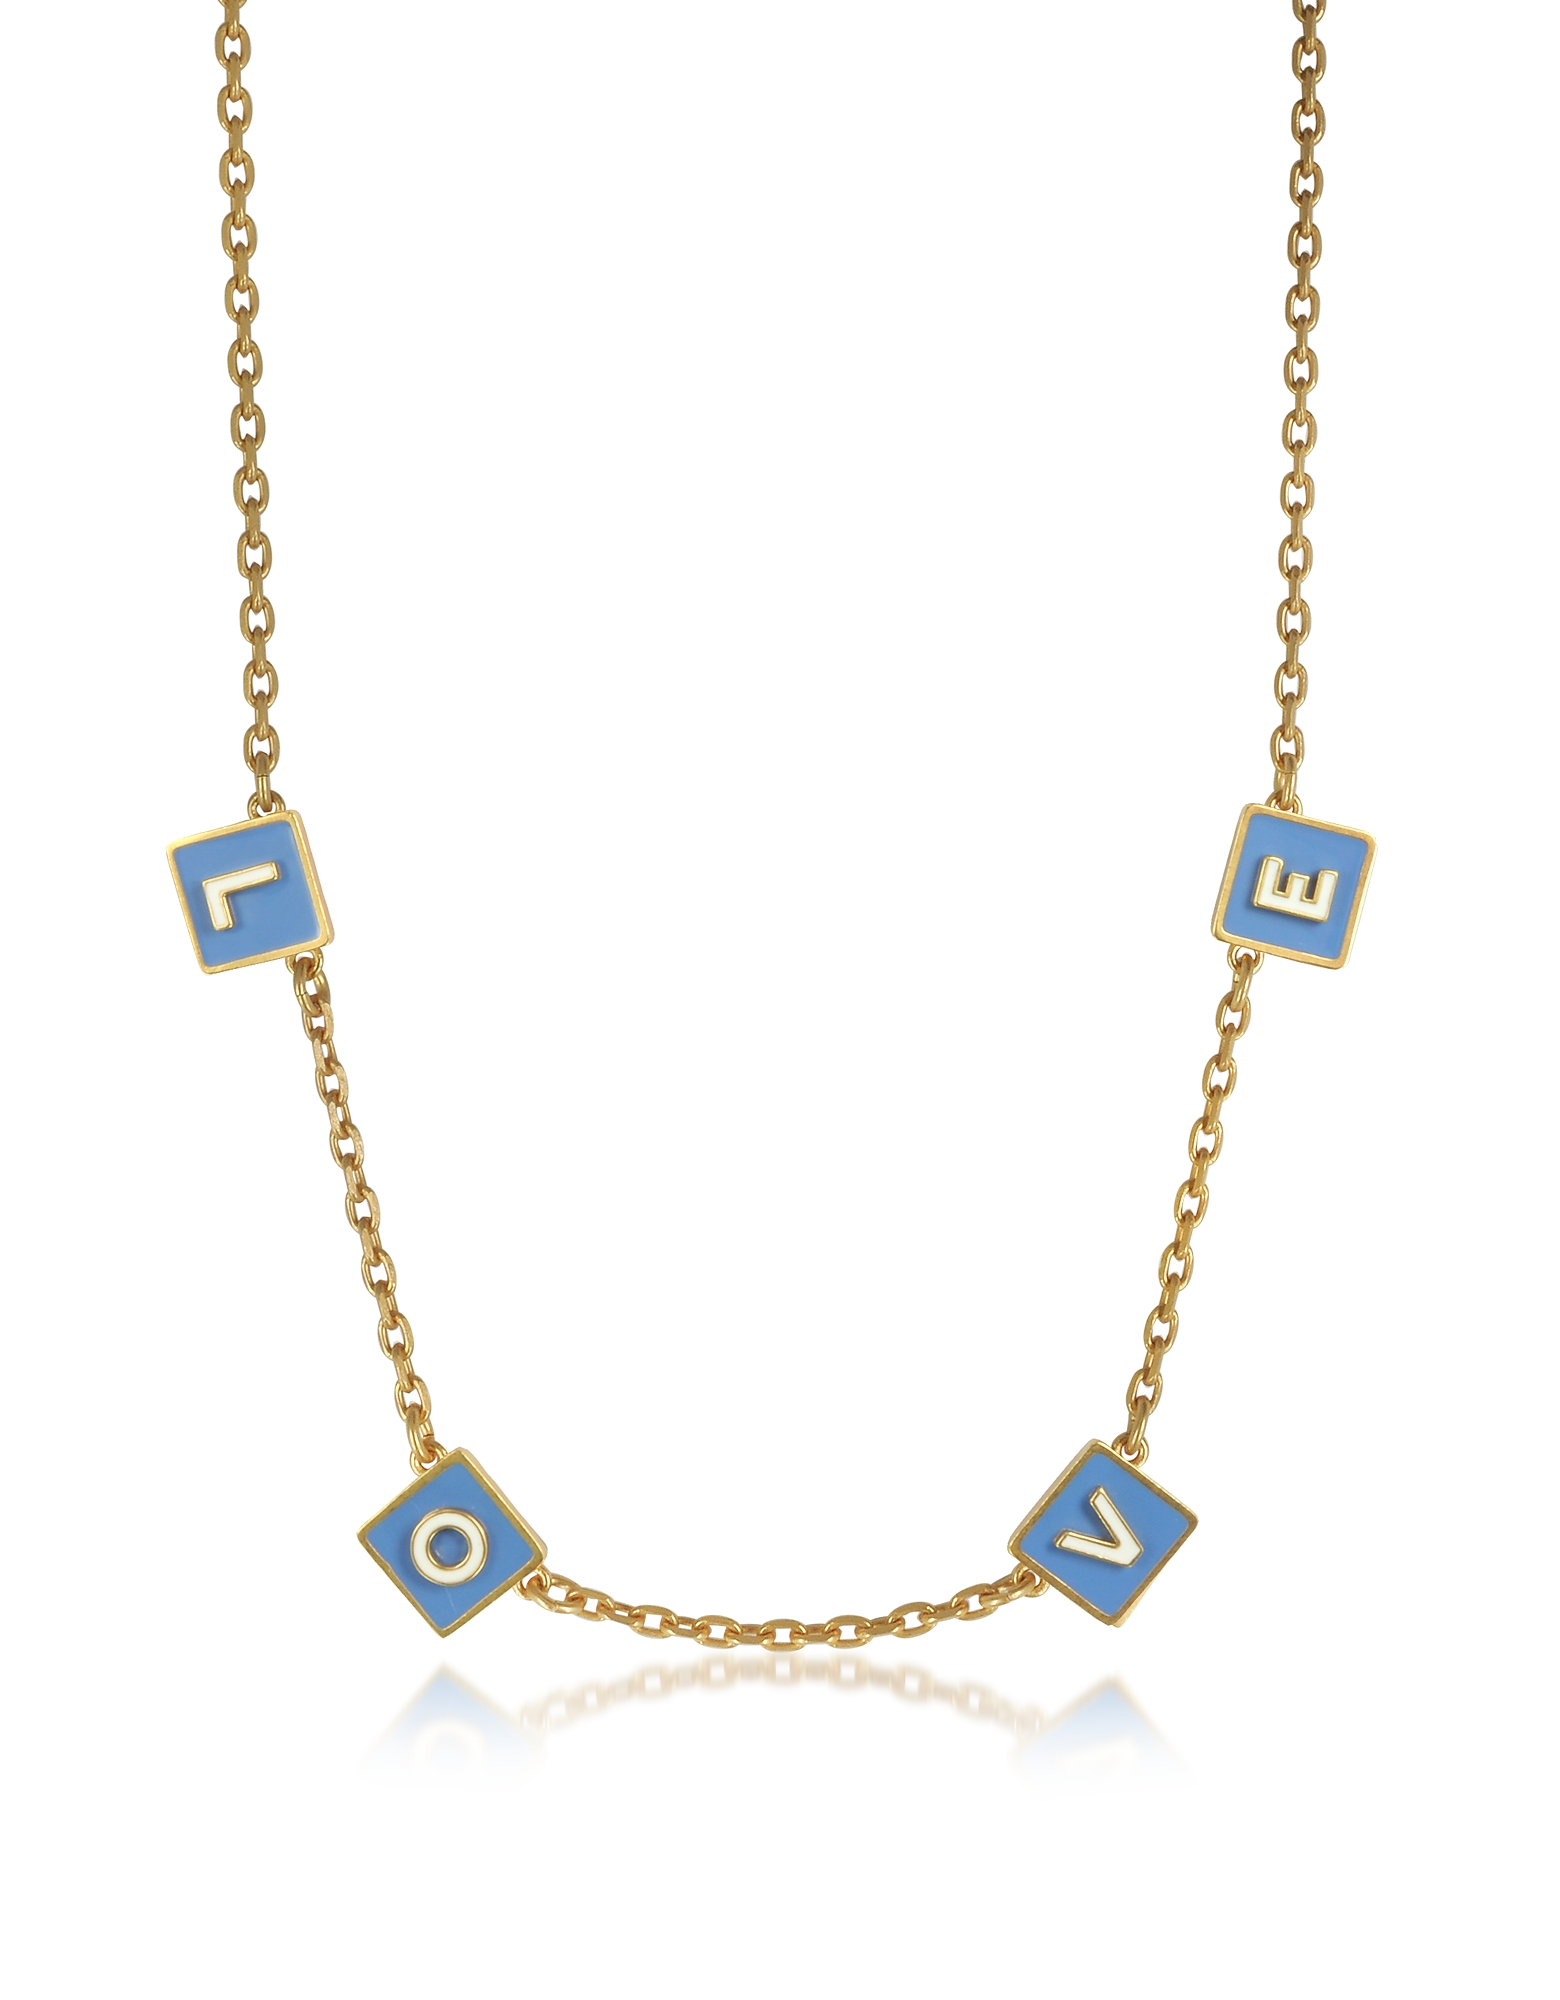 Tory Burch Necklaces, Sunny Blue/New Ivory Enamel and Vintage Gold Brass Message Choker Necklace